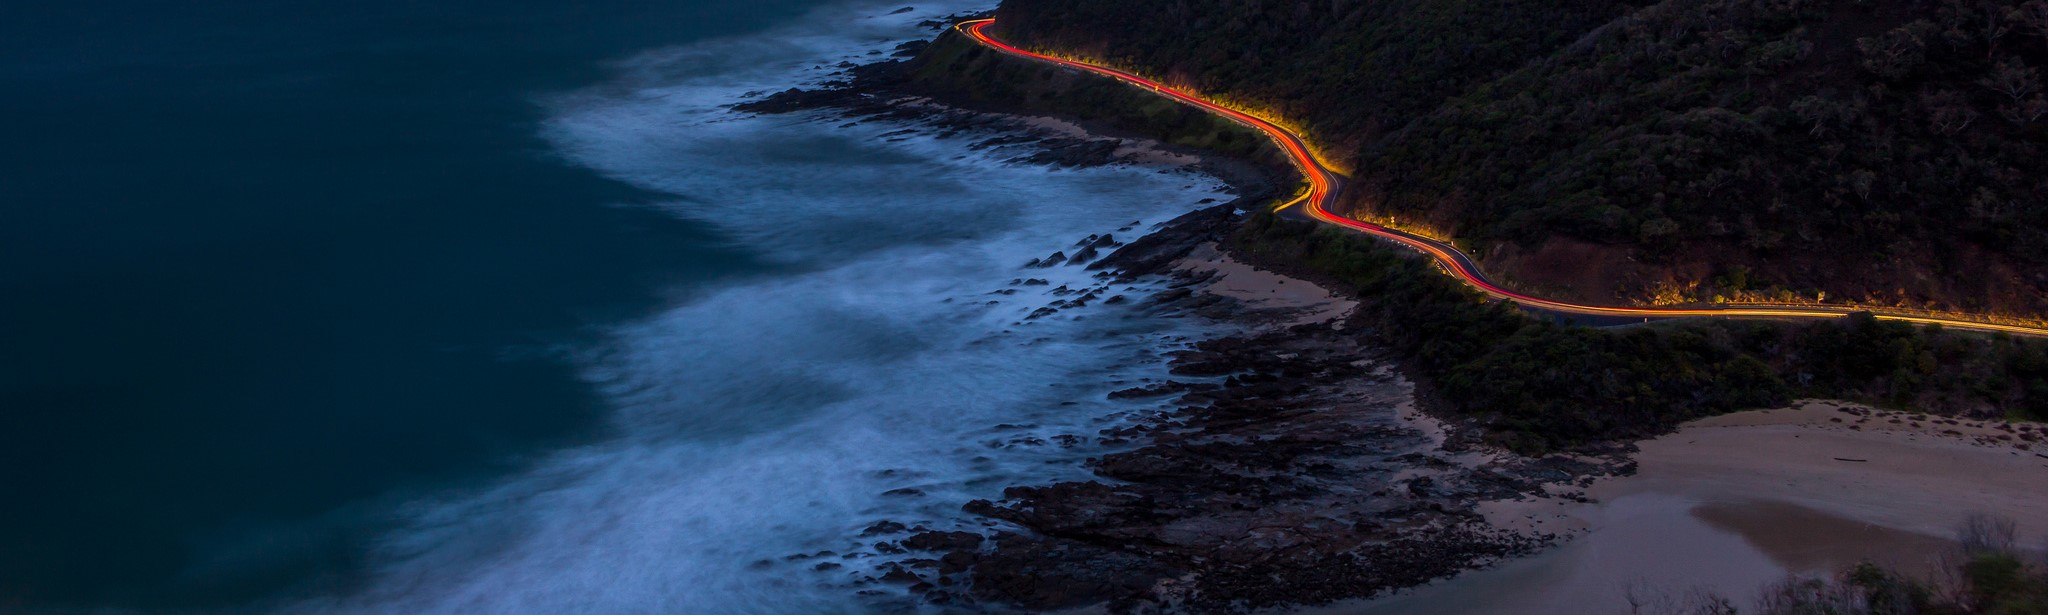 The Great Ocean Road, Australia (Photo: Michael Sanders/Flickr)